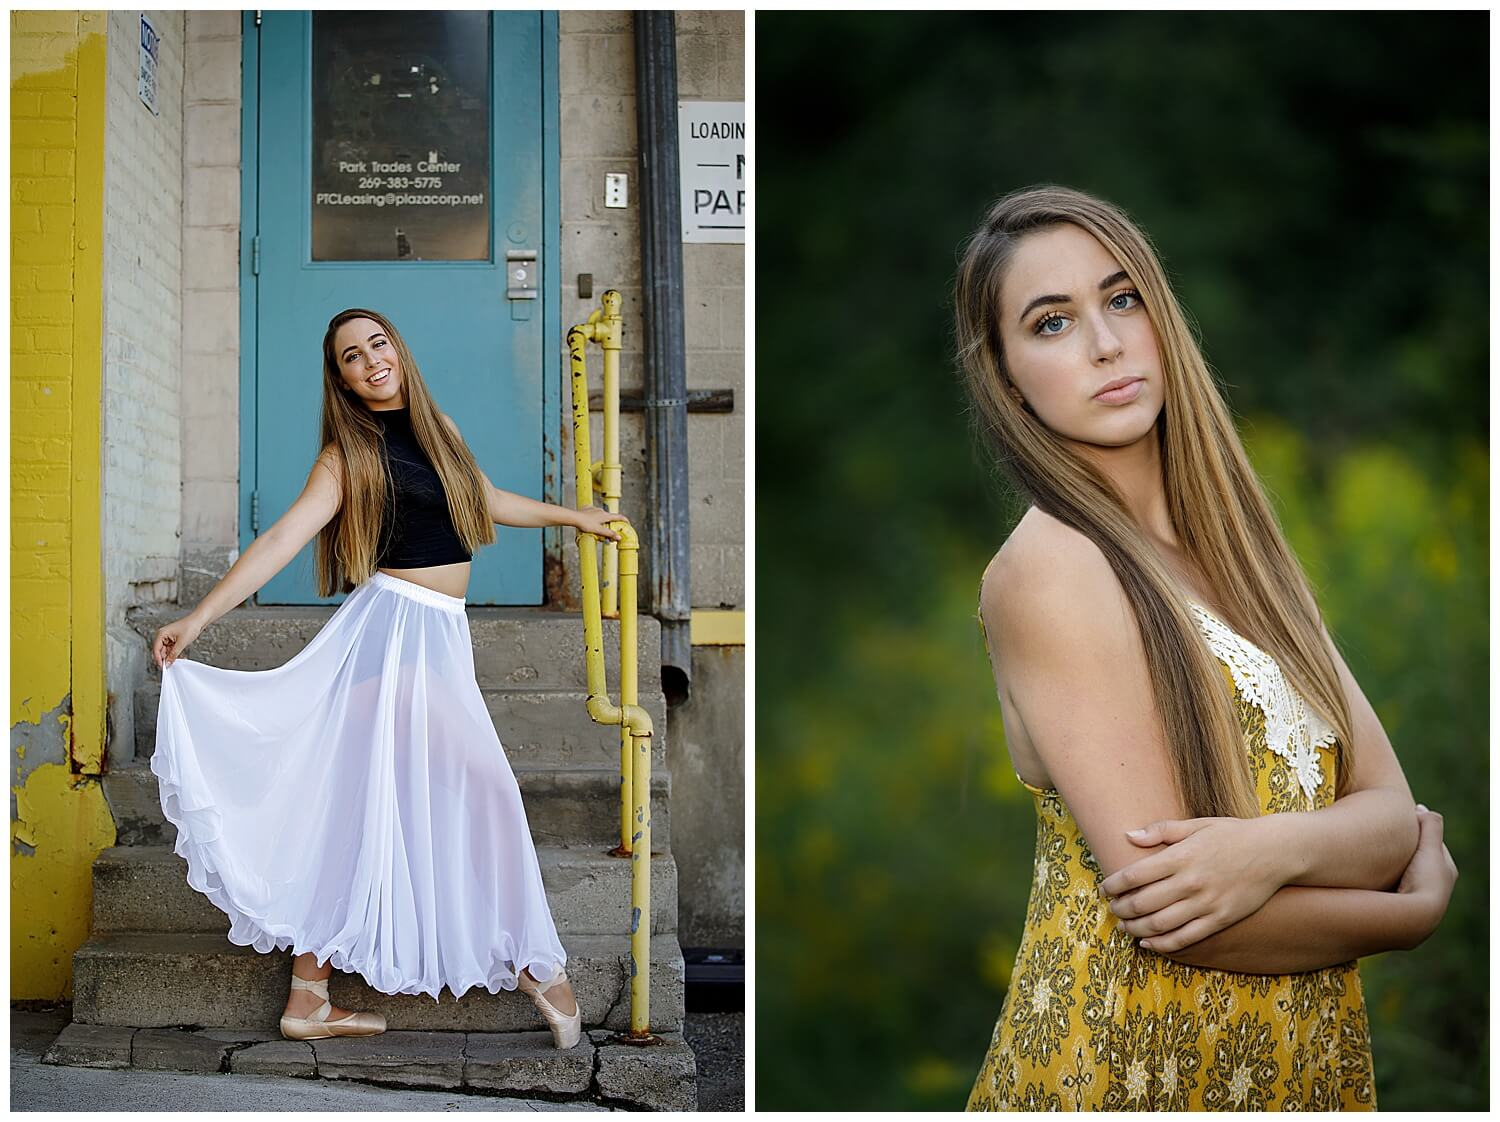 Dance and summer senior pictures in kalamazoo